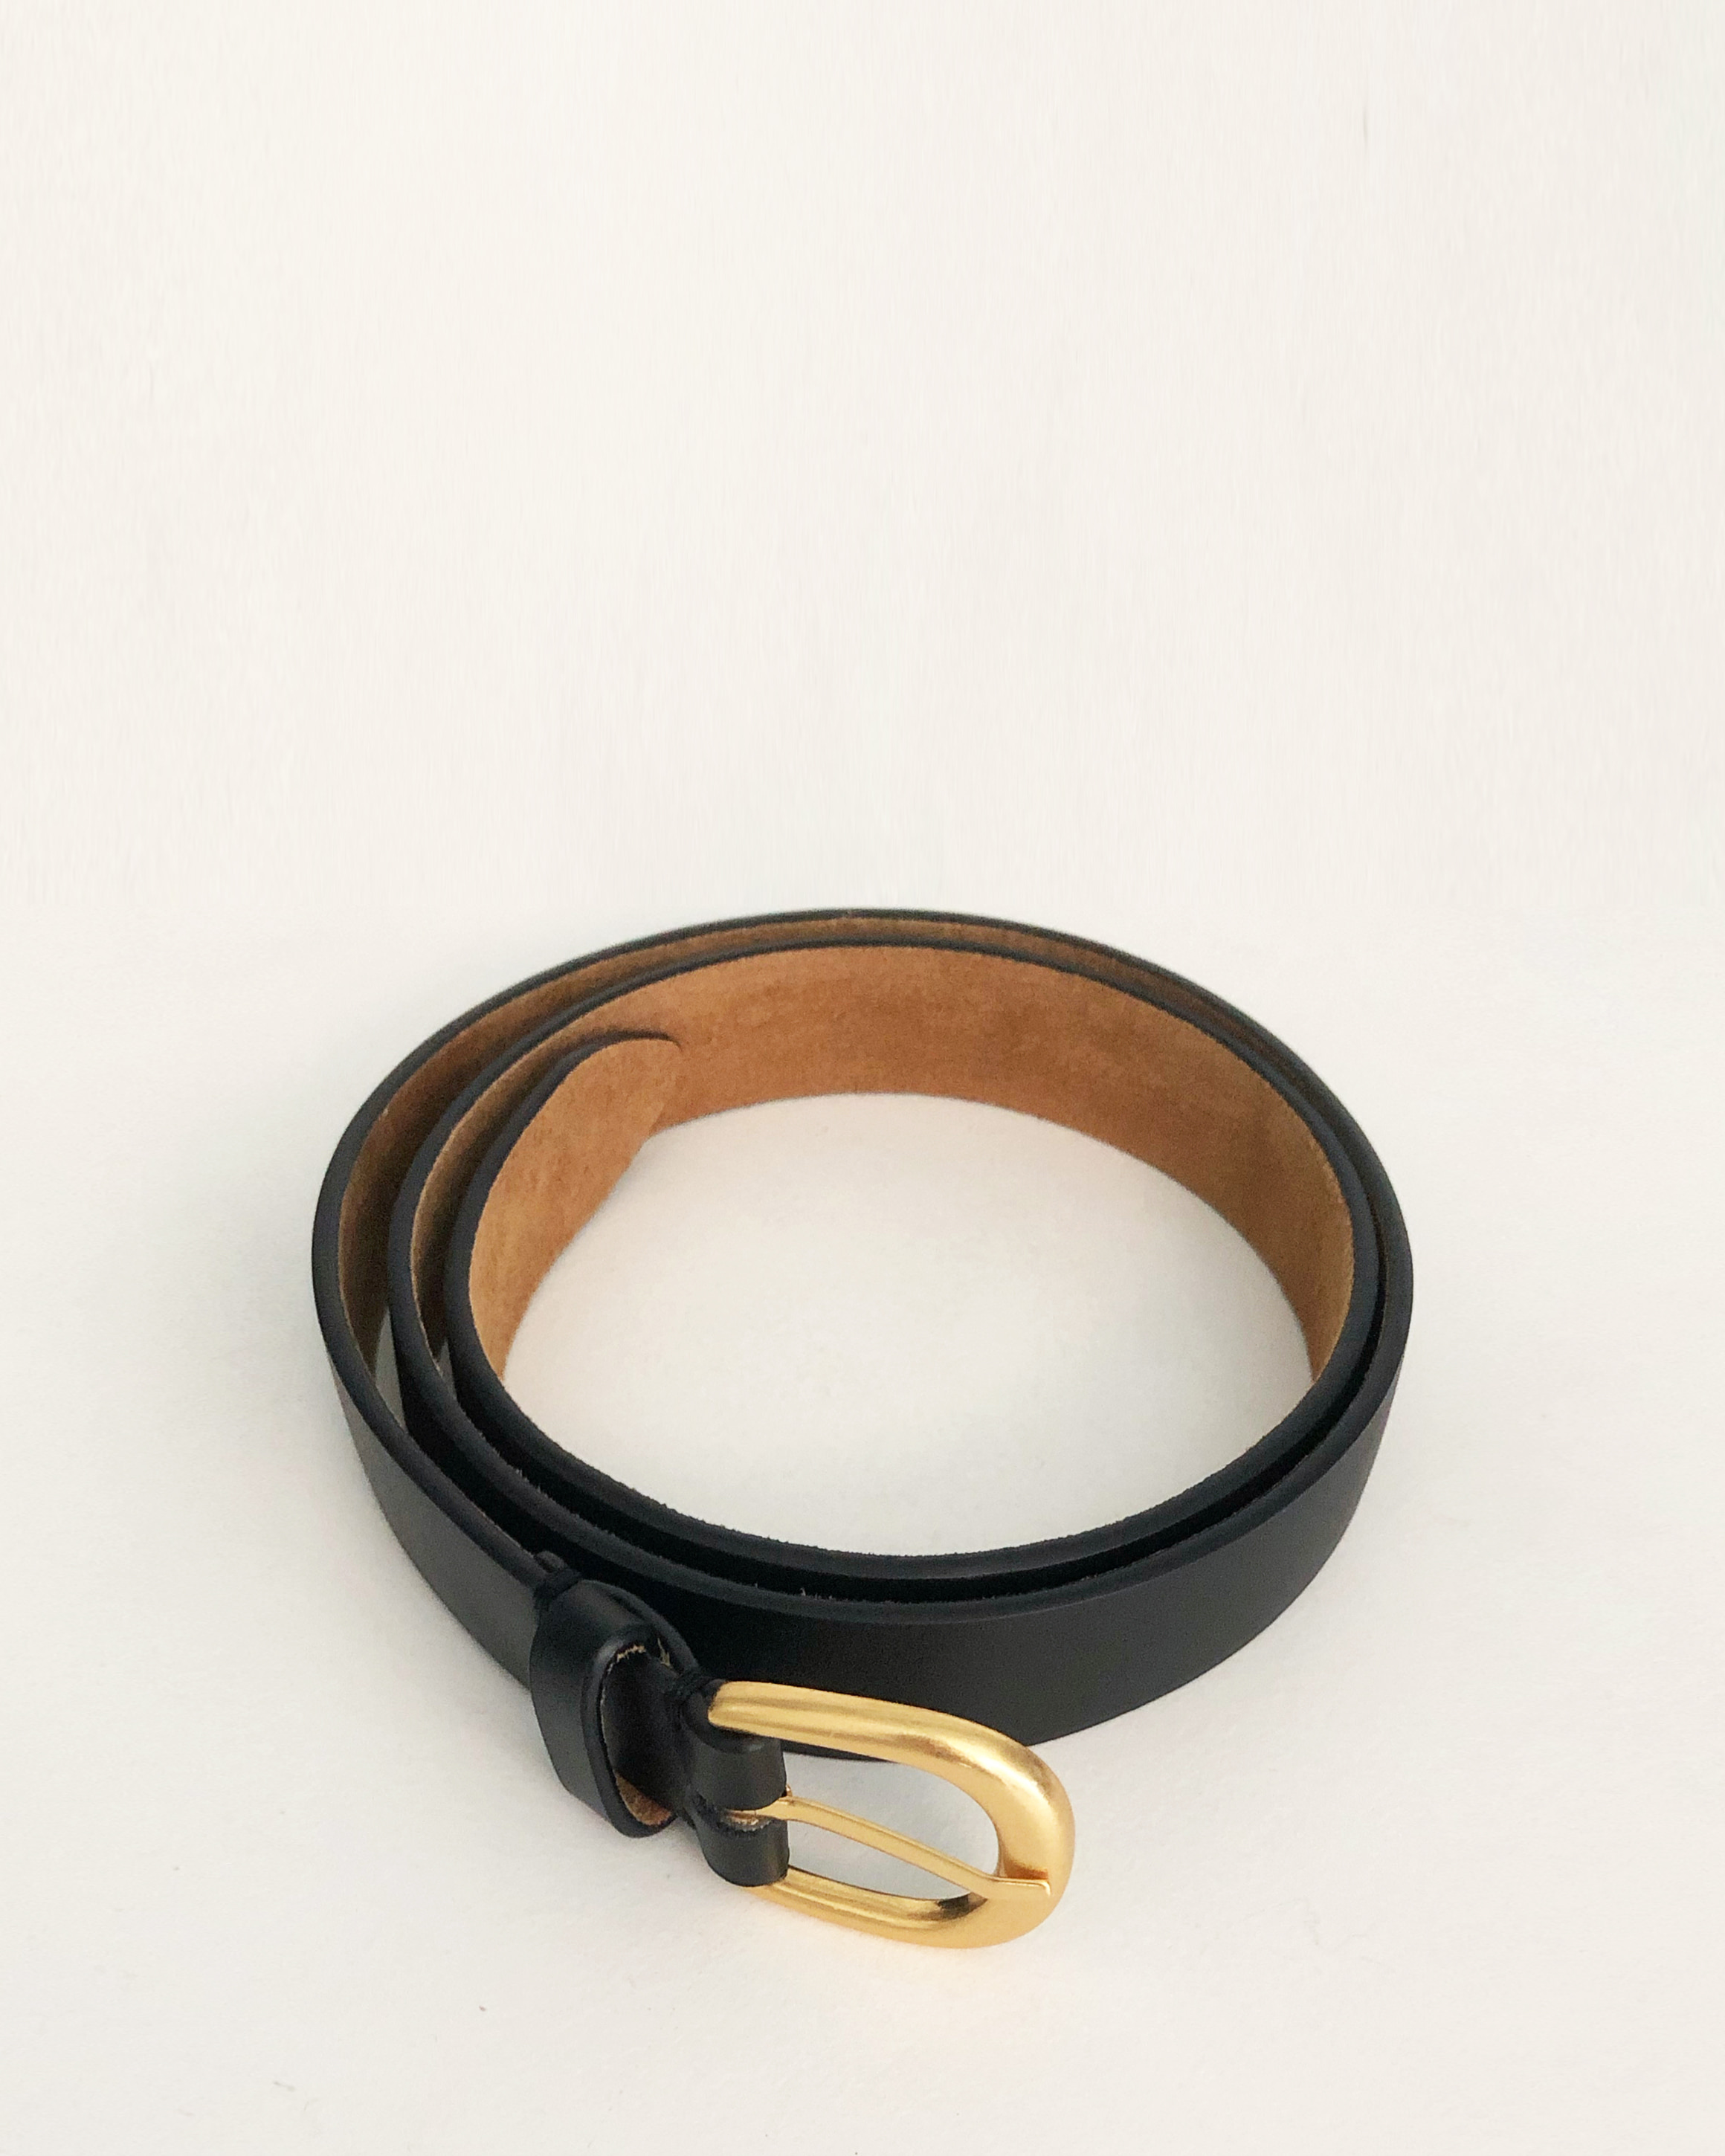 Belt_Antique gold